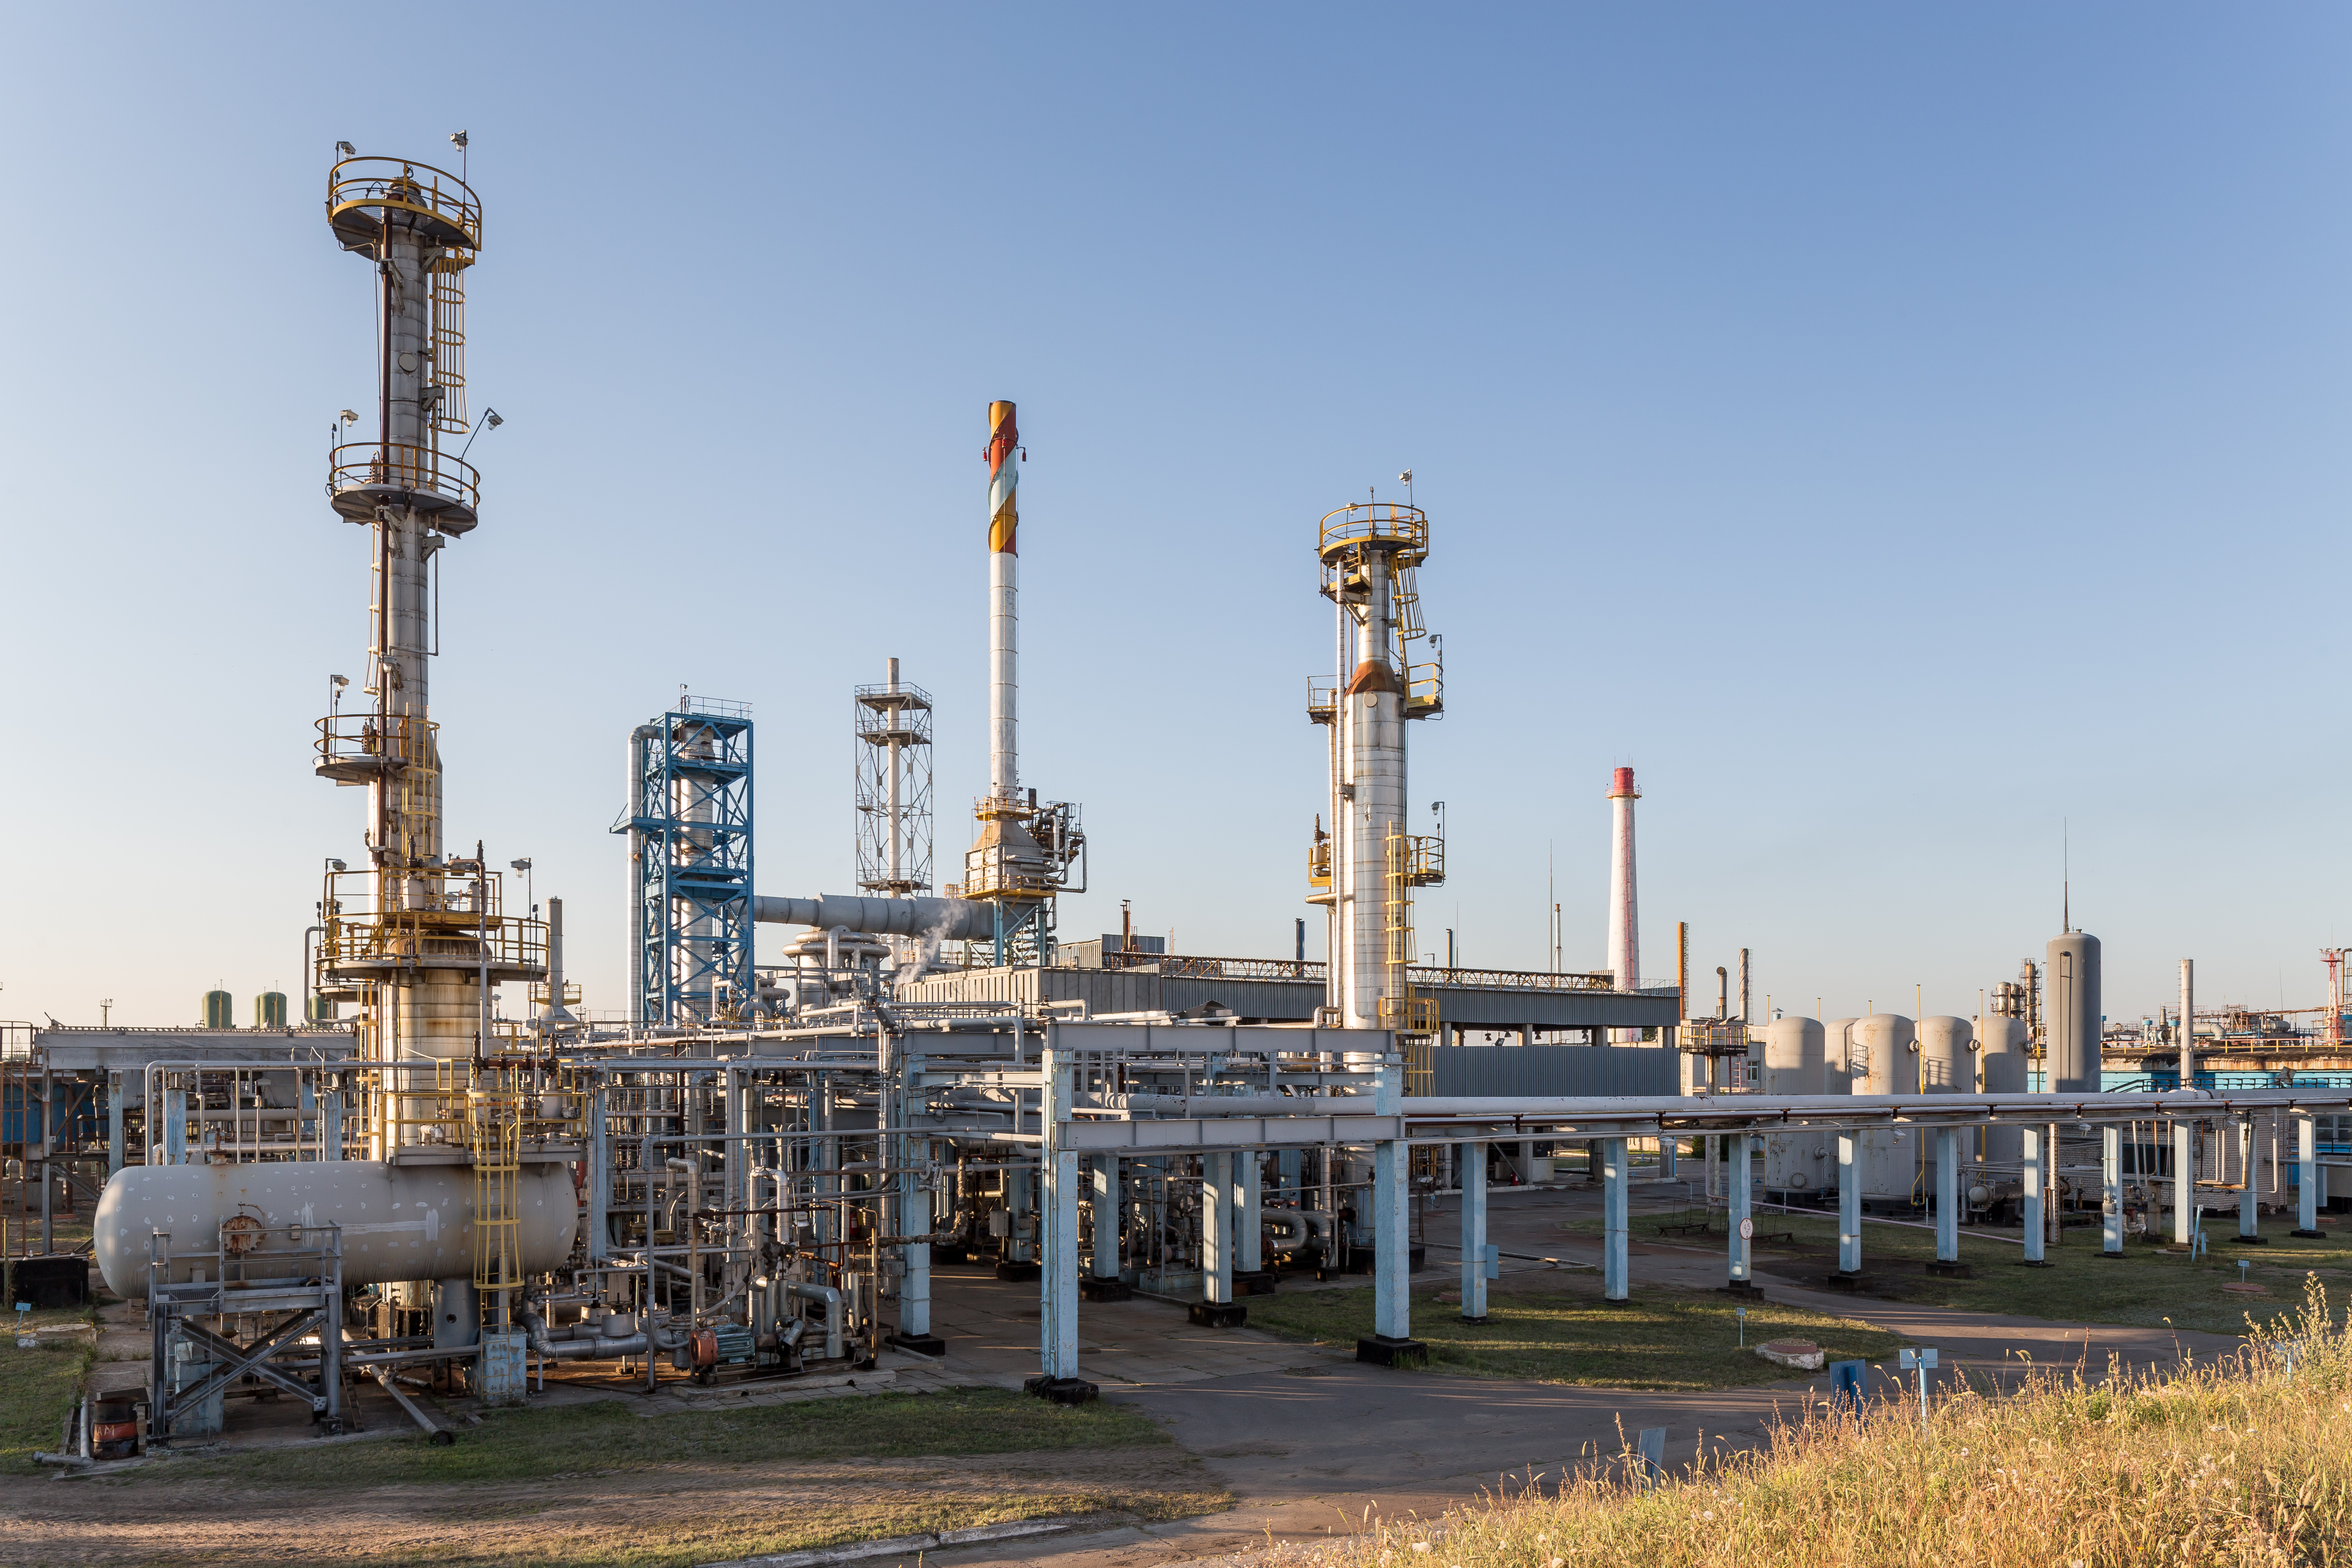 Shebelynka Oil Refinery to Conduct Scheduled Preventive Maintenance